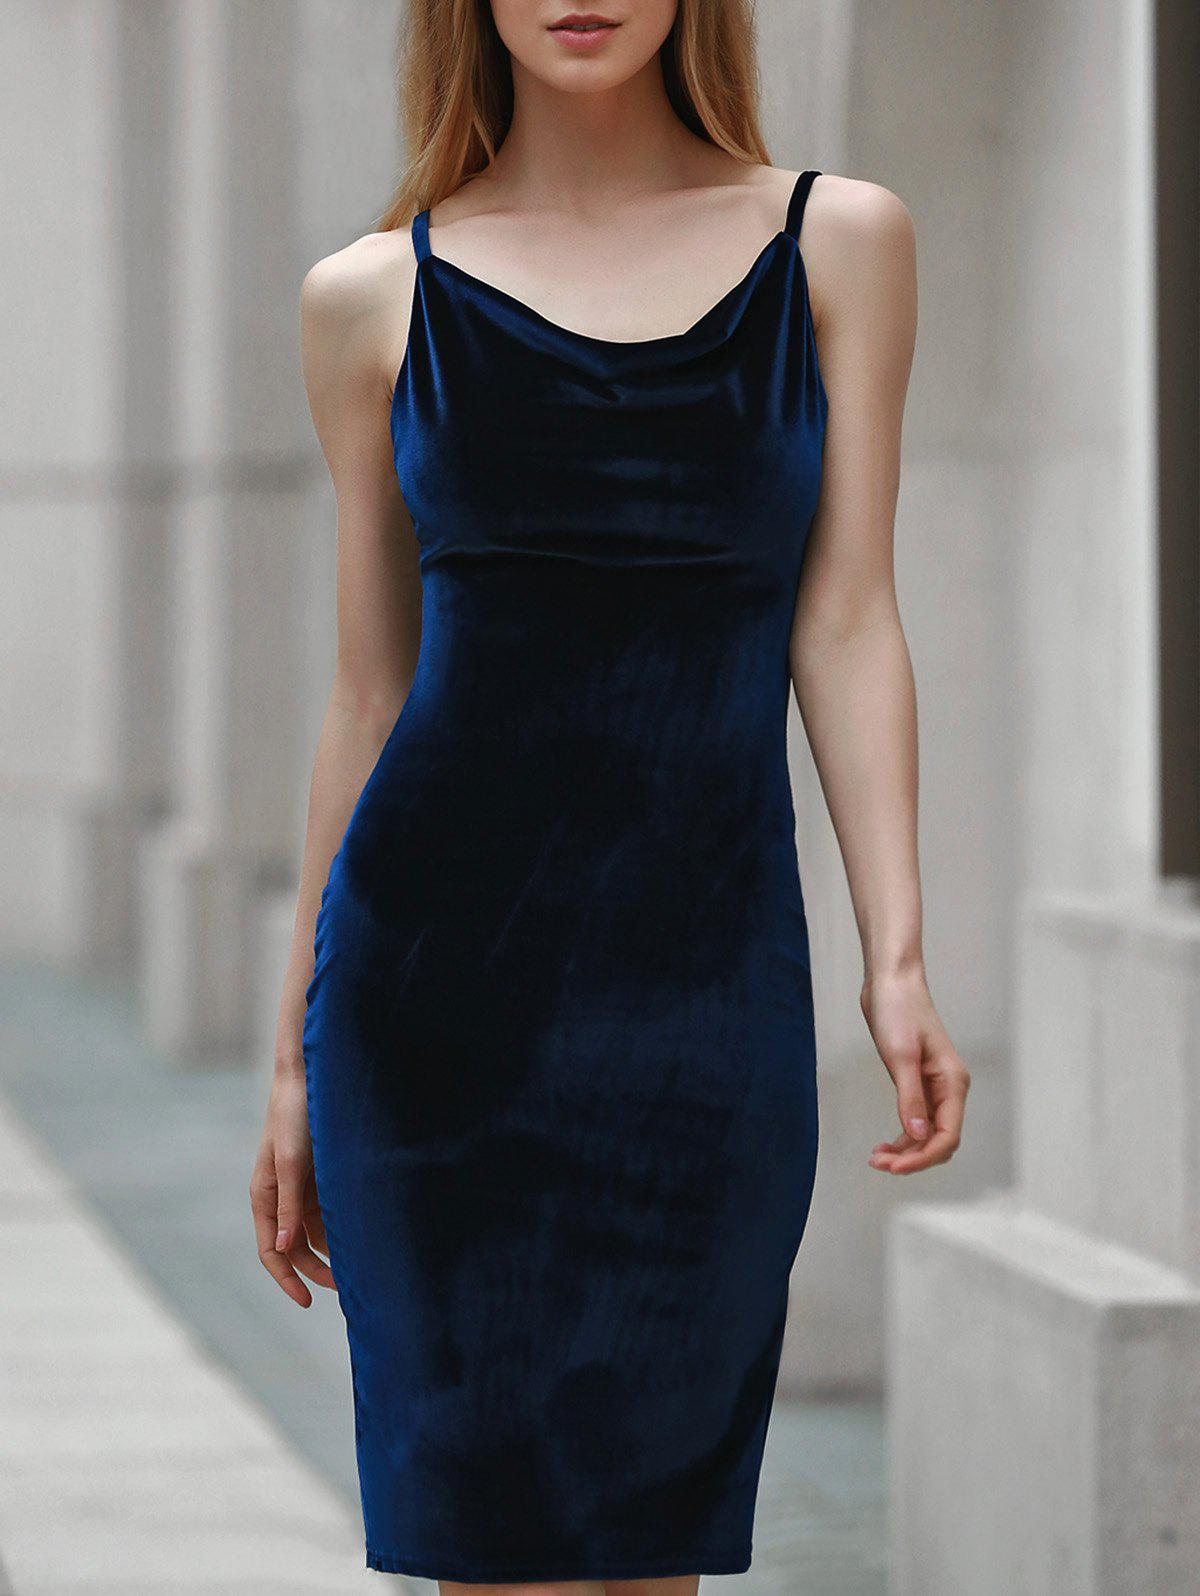 Trendy Solid Color Spaghetti Strap Backless Sleeveless Dress For Women